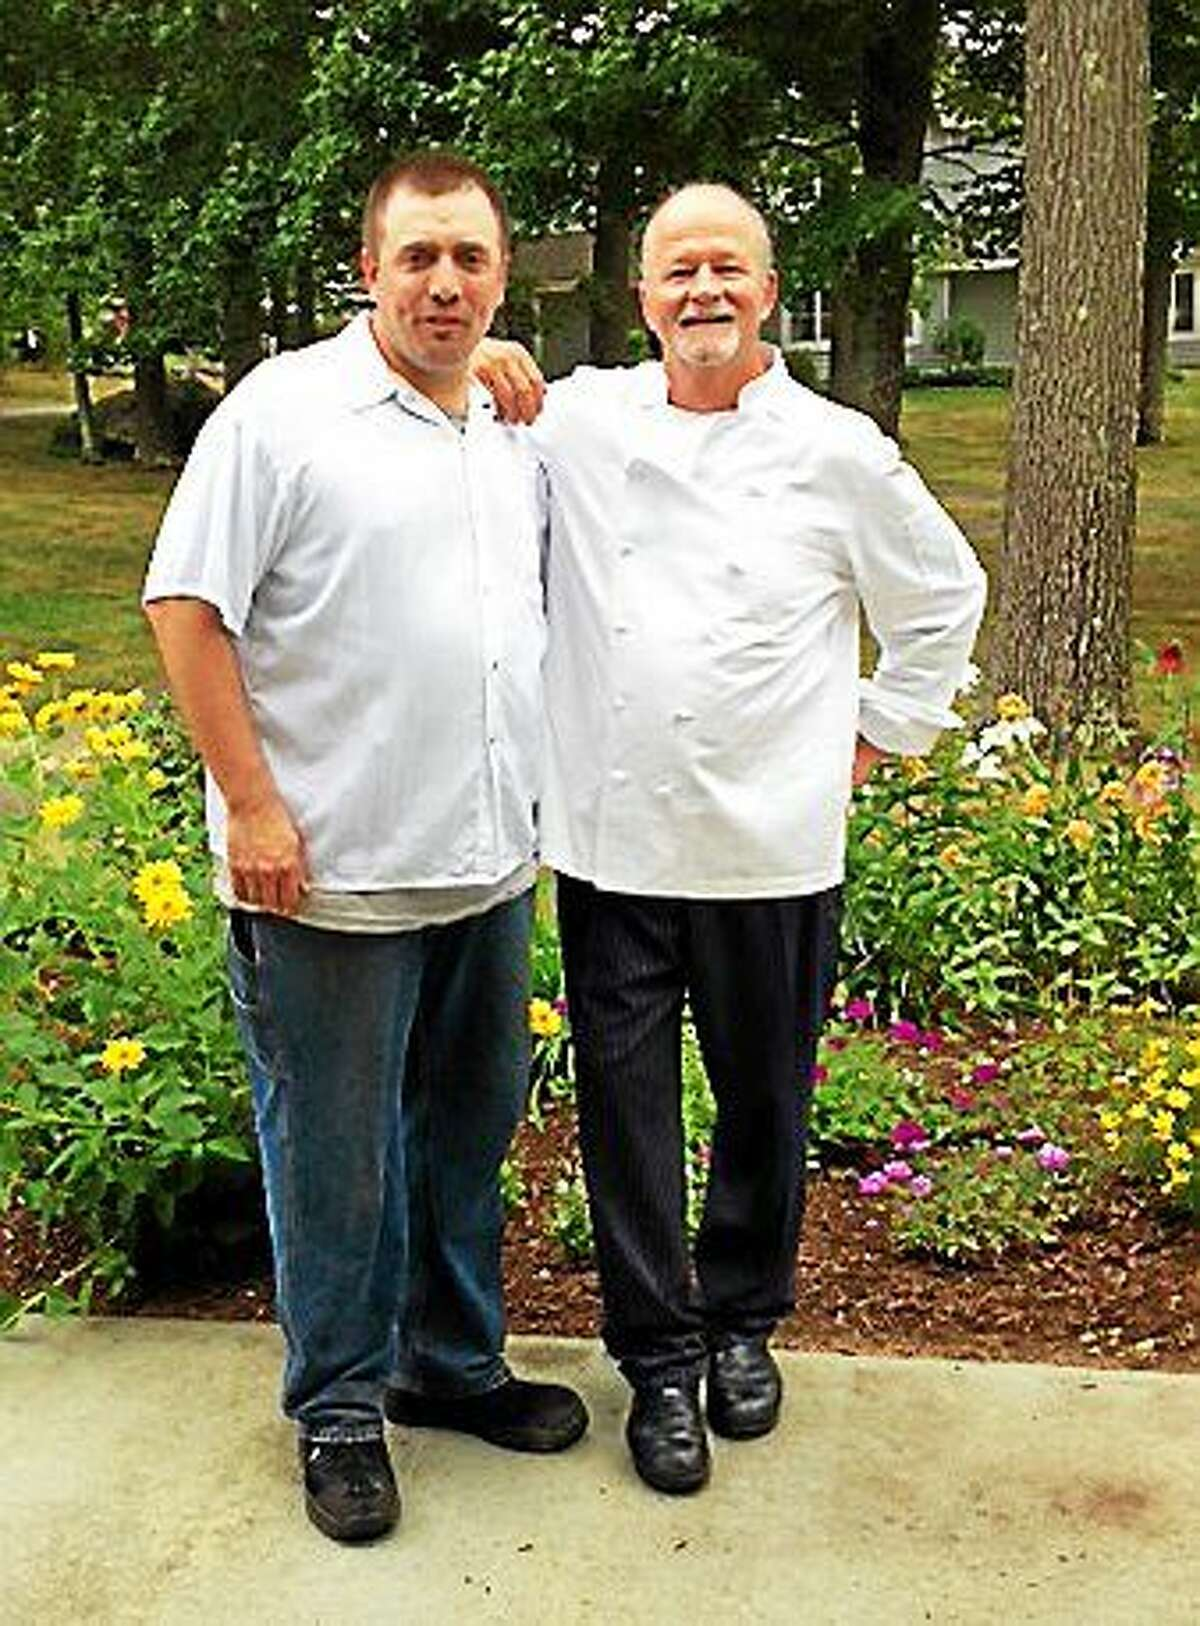 CONTRIBUTED PHOTO Pictured: Vista member Gordon Ewen, left, and Food Service Director Chris Pardue.